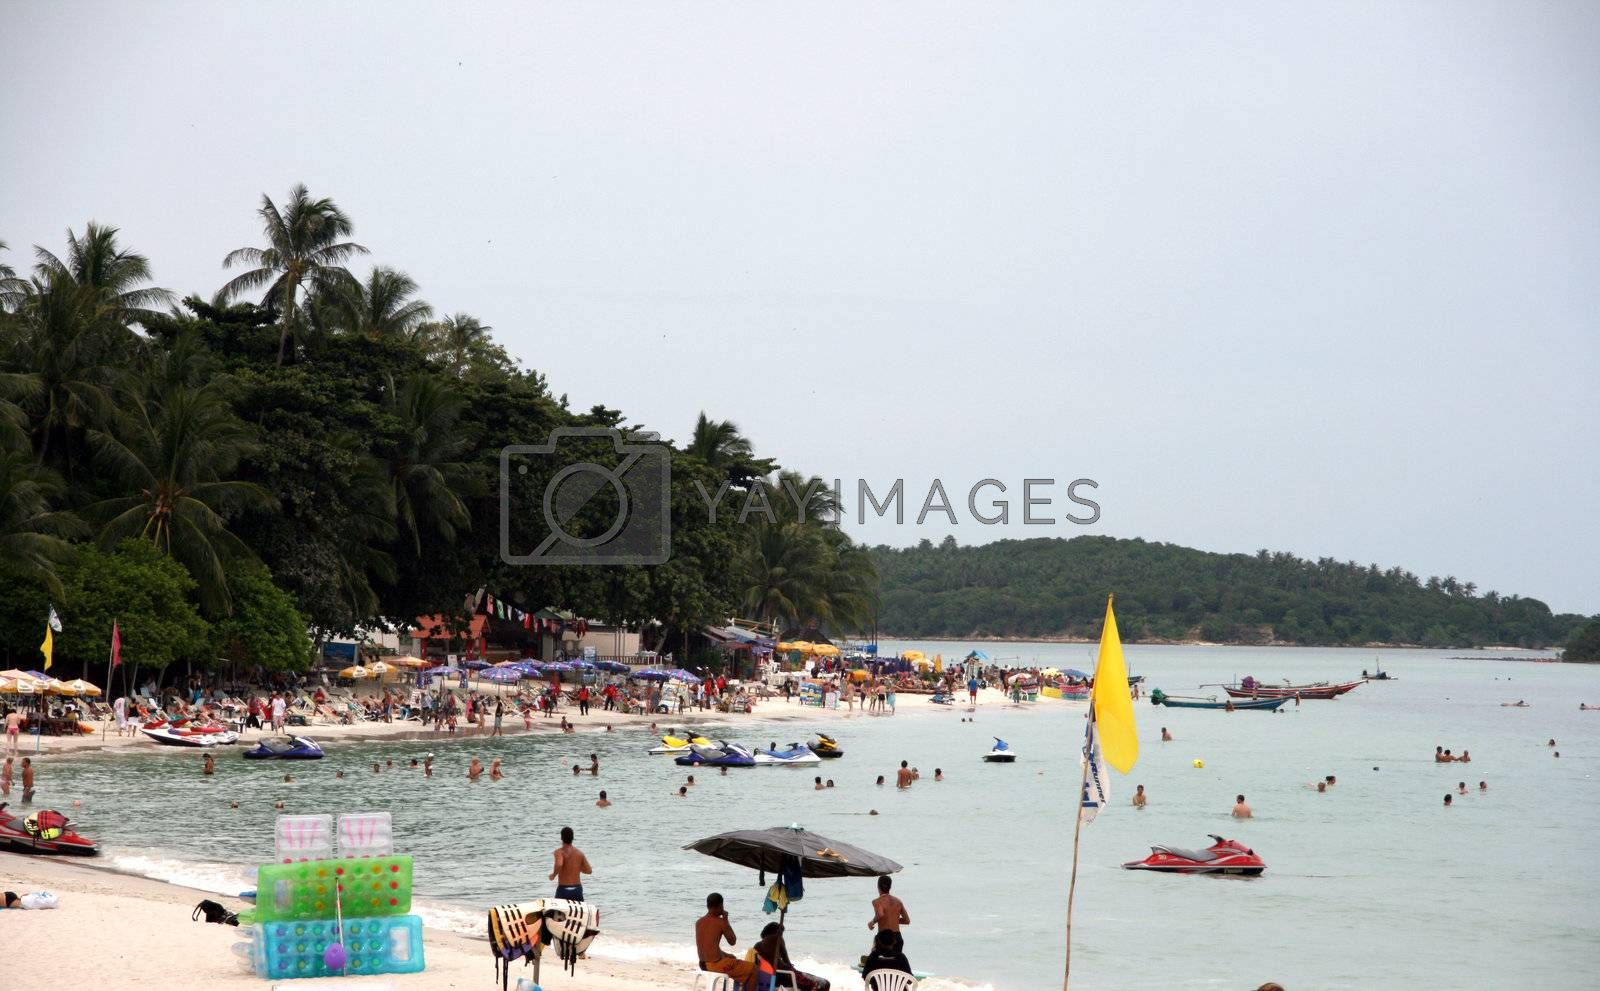 Royalty free image of action in chaweng beach by forwardcom